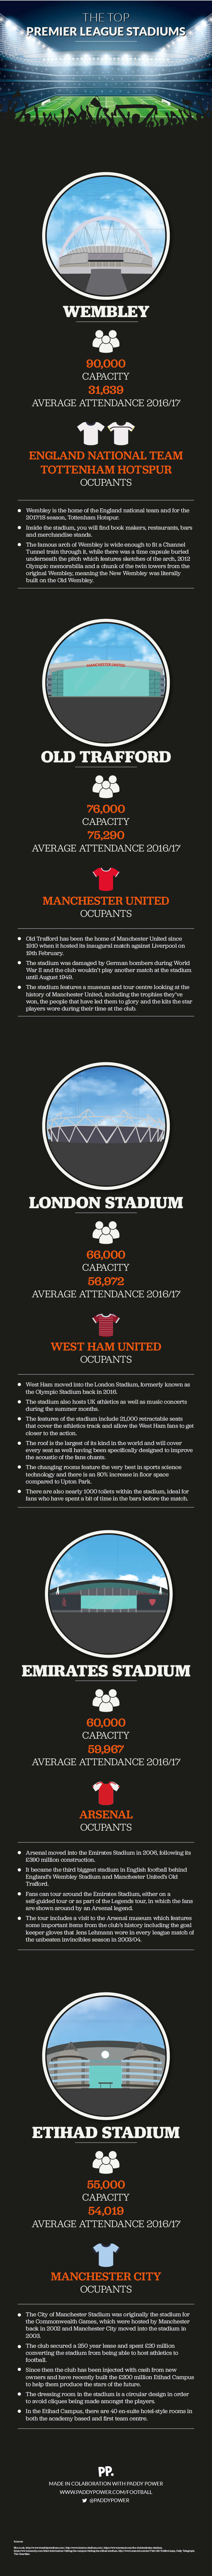 Top Premier League Stadiums